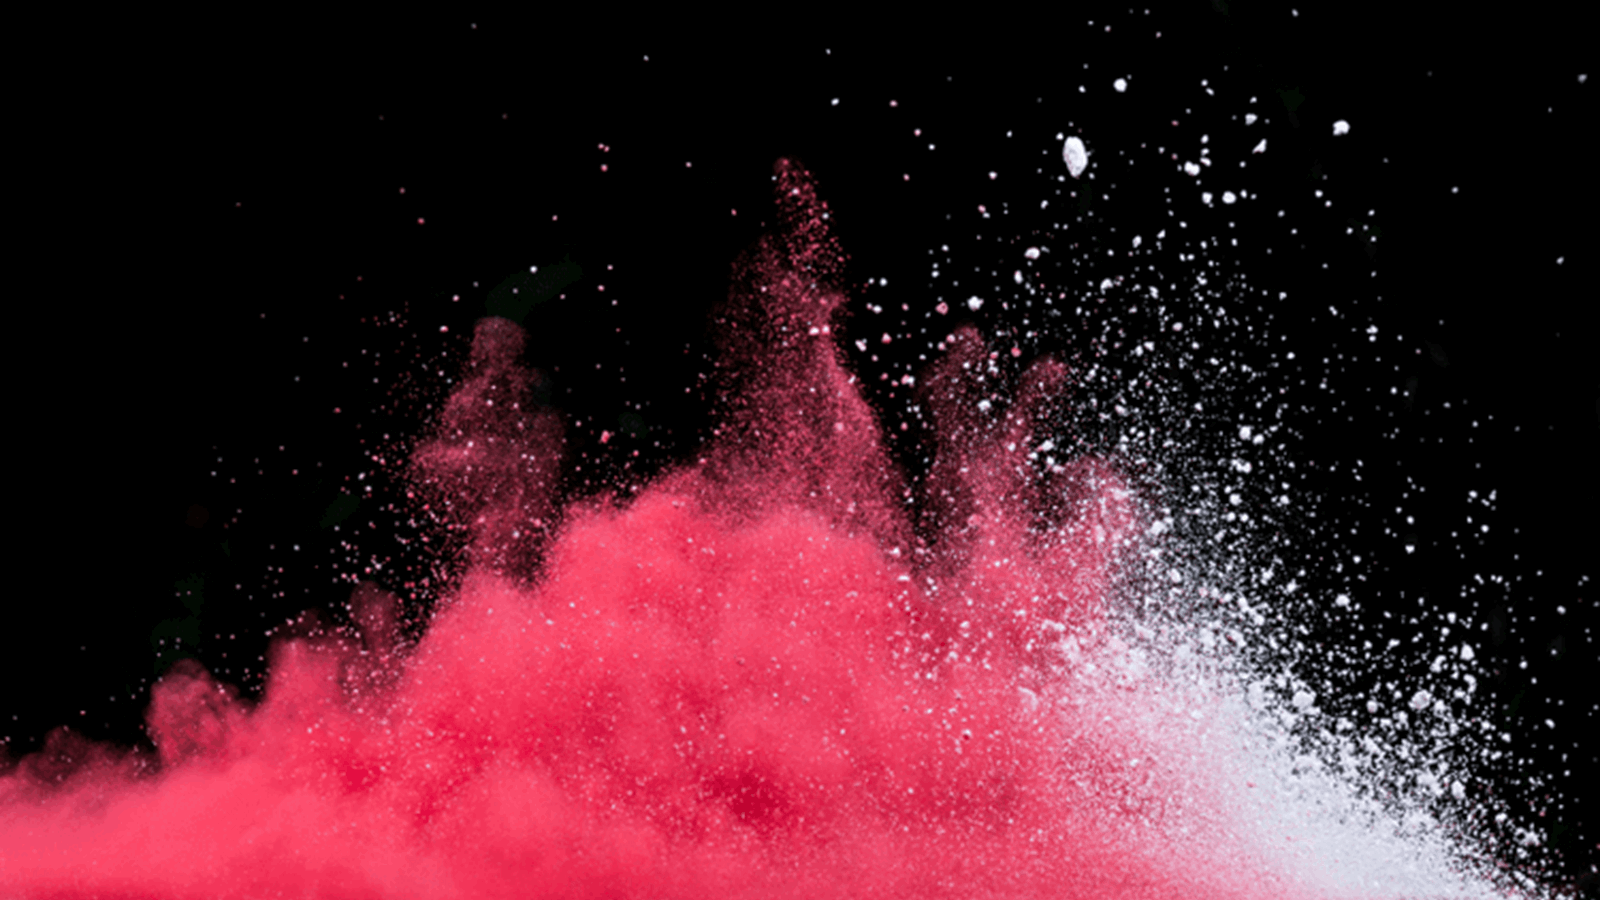 Red and white powder being thrown up into the air representing changing the enterprise